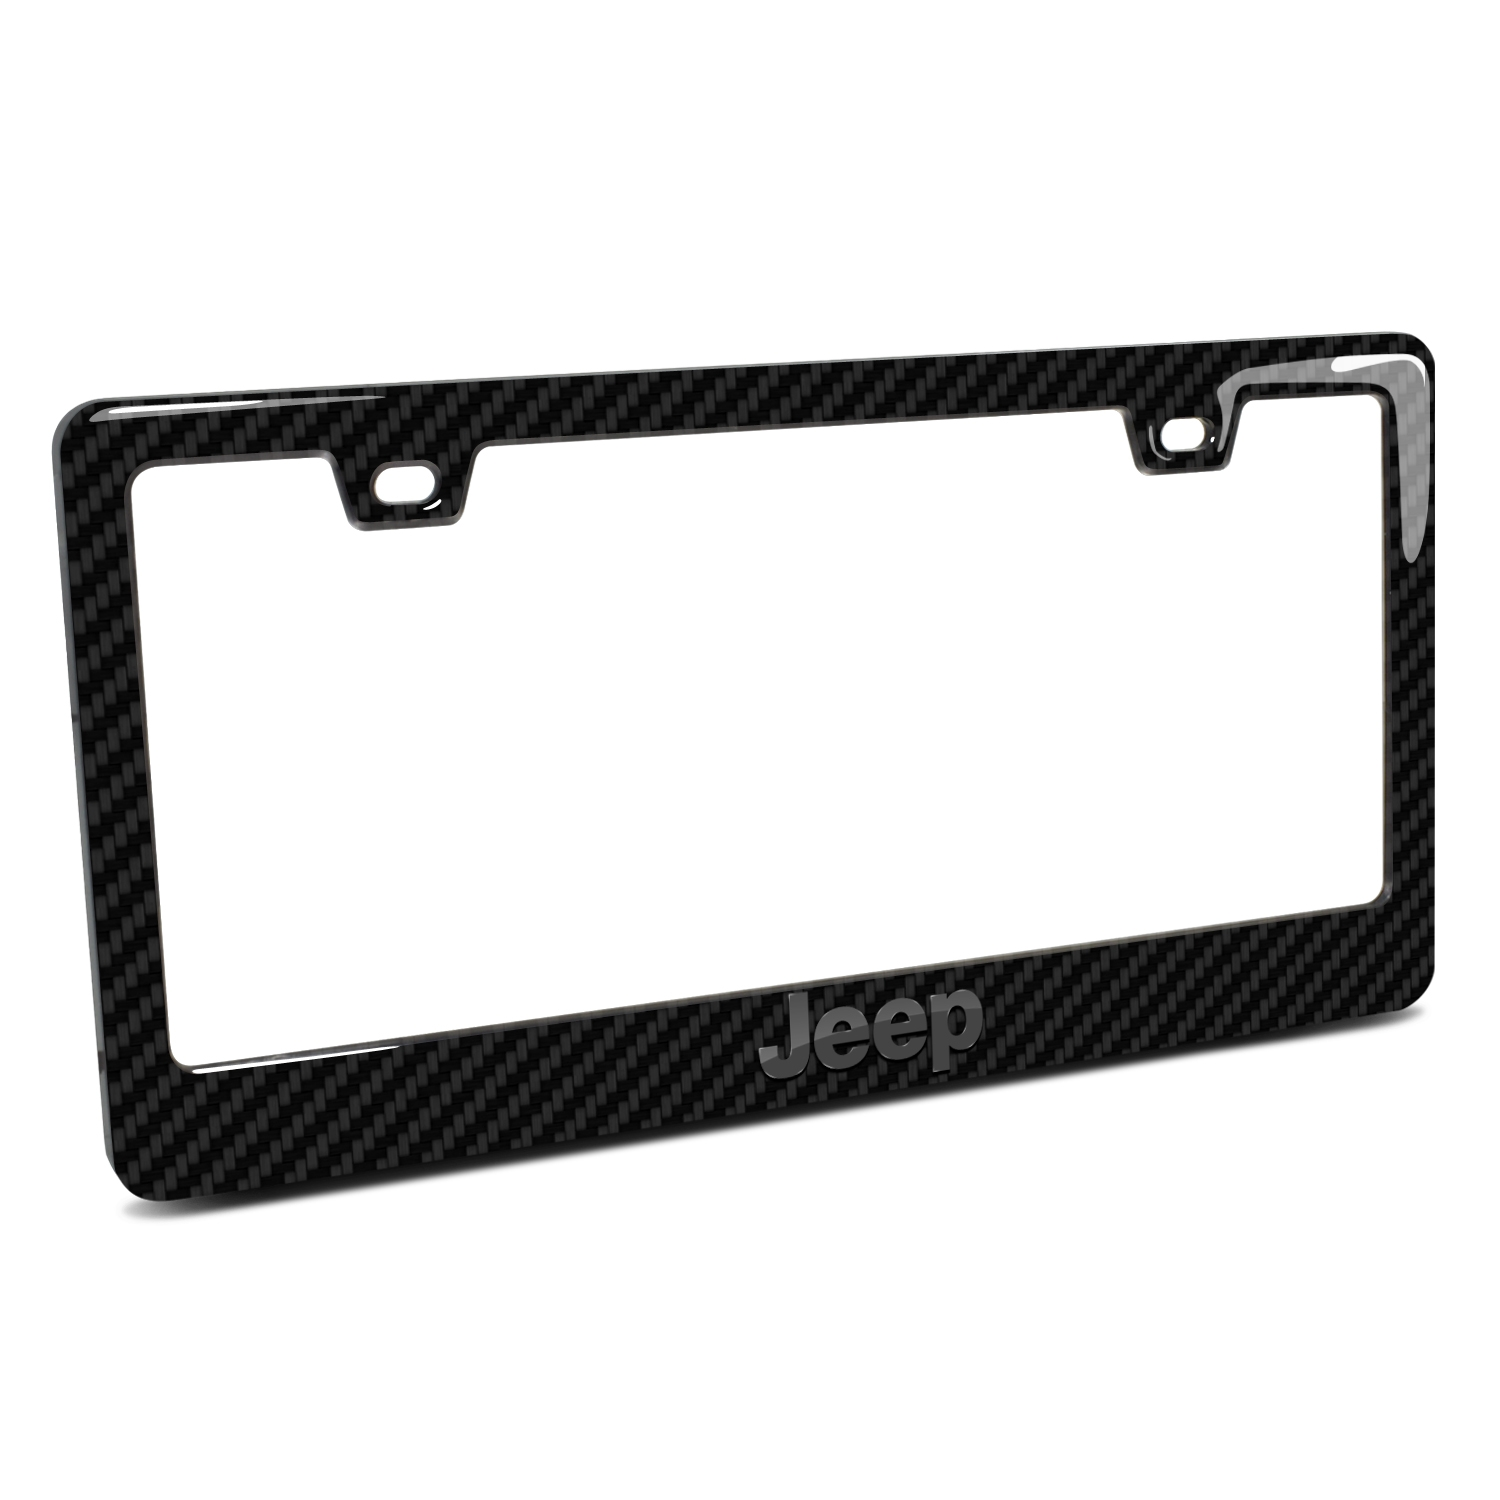 Jeep in 3D Black on Black Real 3K Carbon Fiber Finish ABS Plastic License Plate Frame